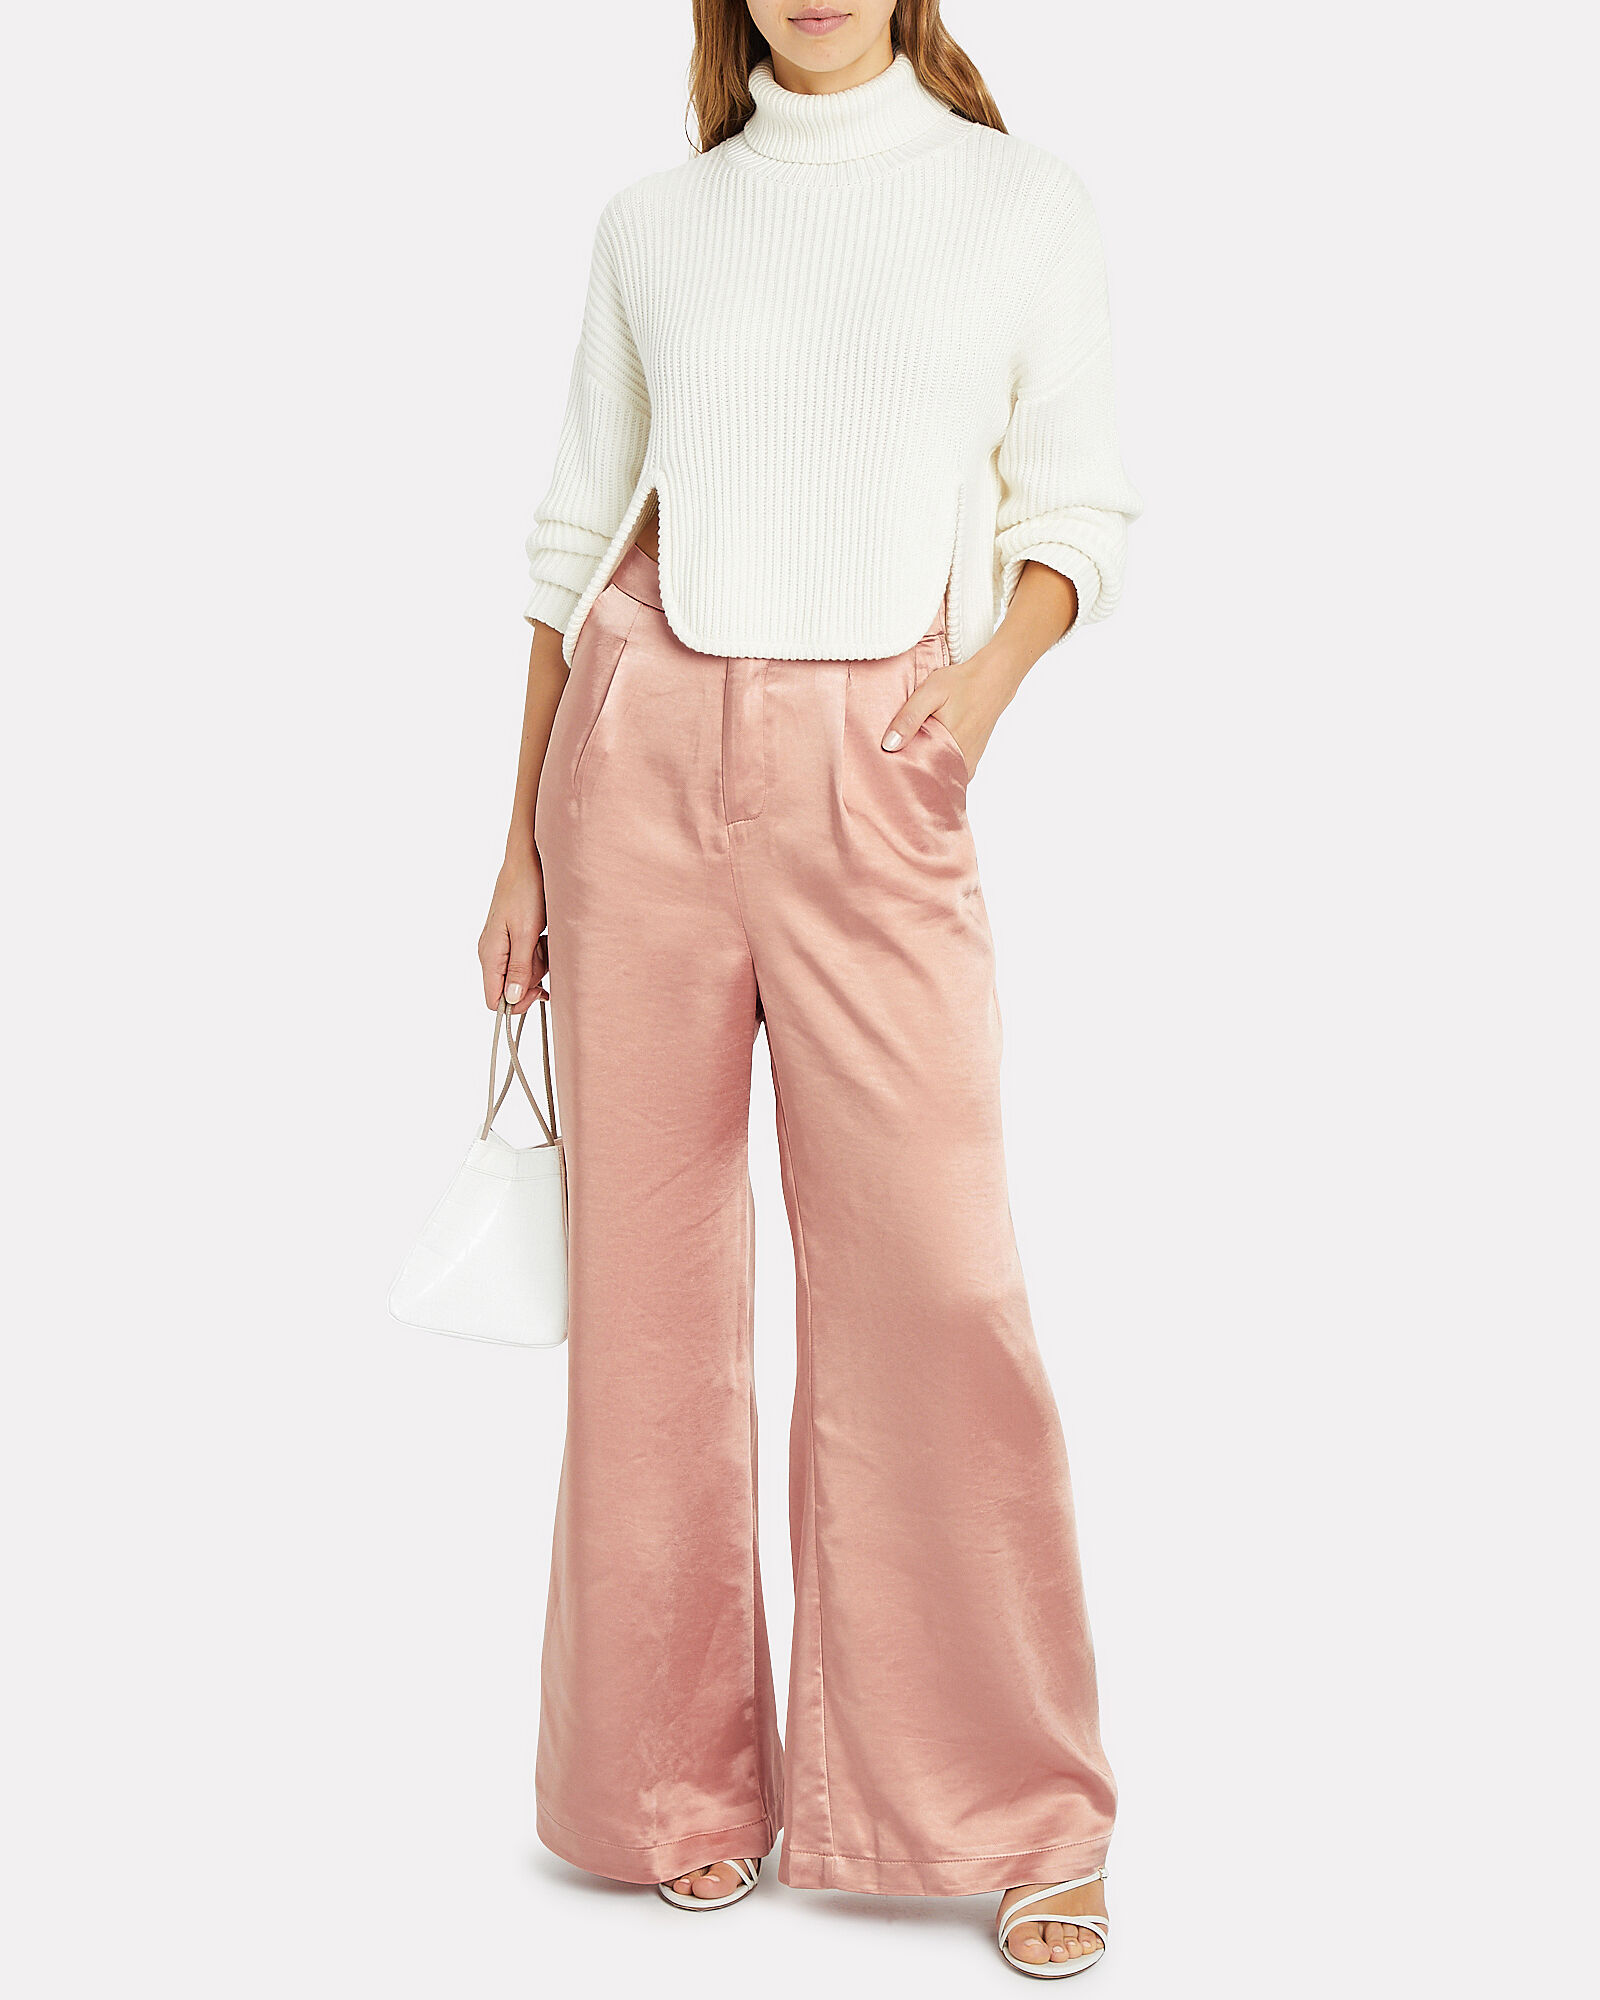 Take The Lead Satin Trousers, PINK, hi-res